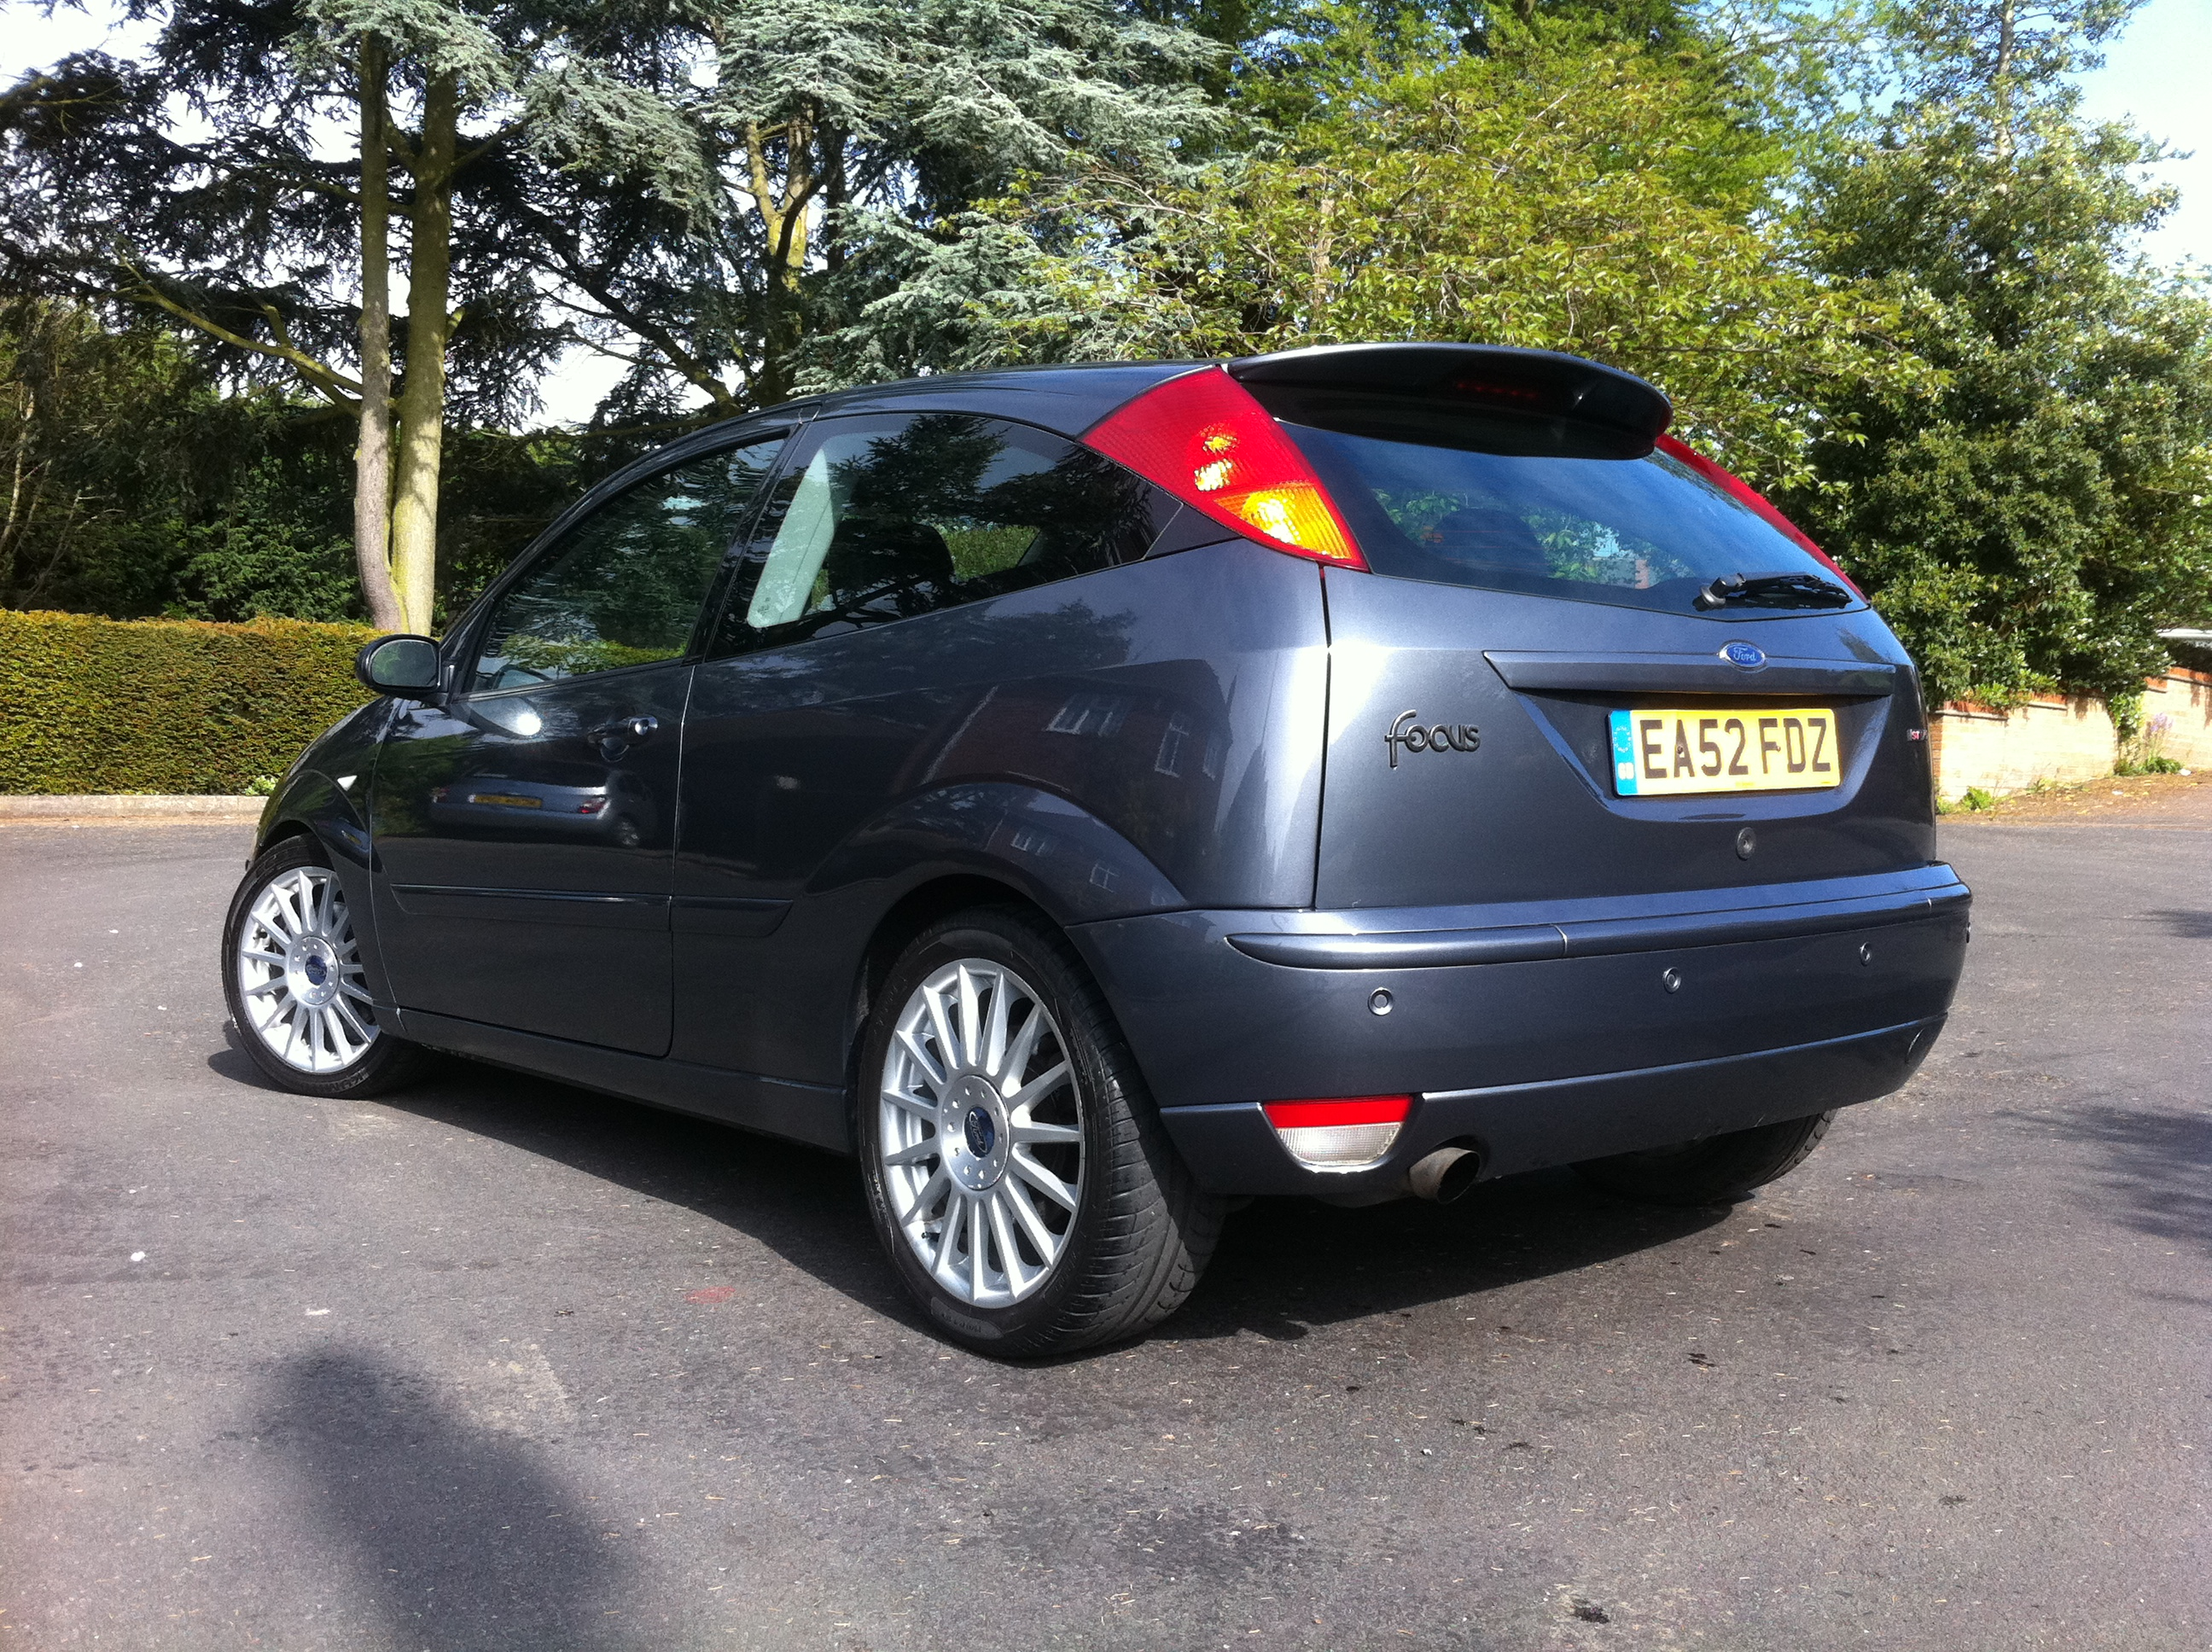 Ford Focus 2 0 St170 Grey Recaro Edition 3dr Hatchback